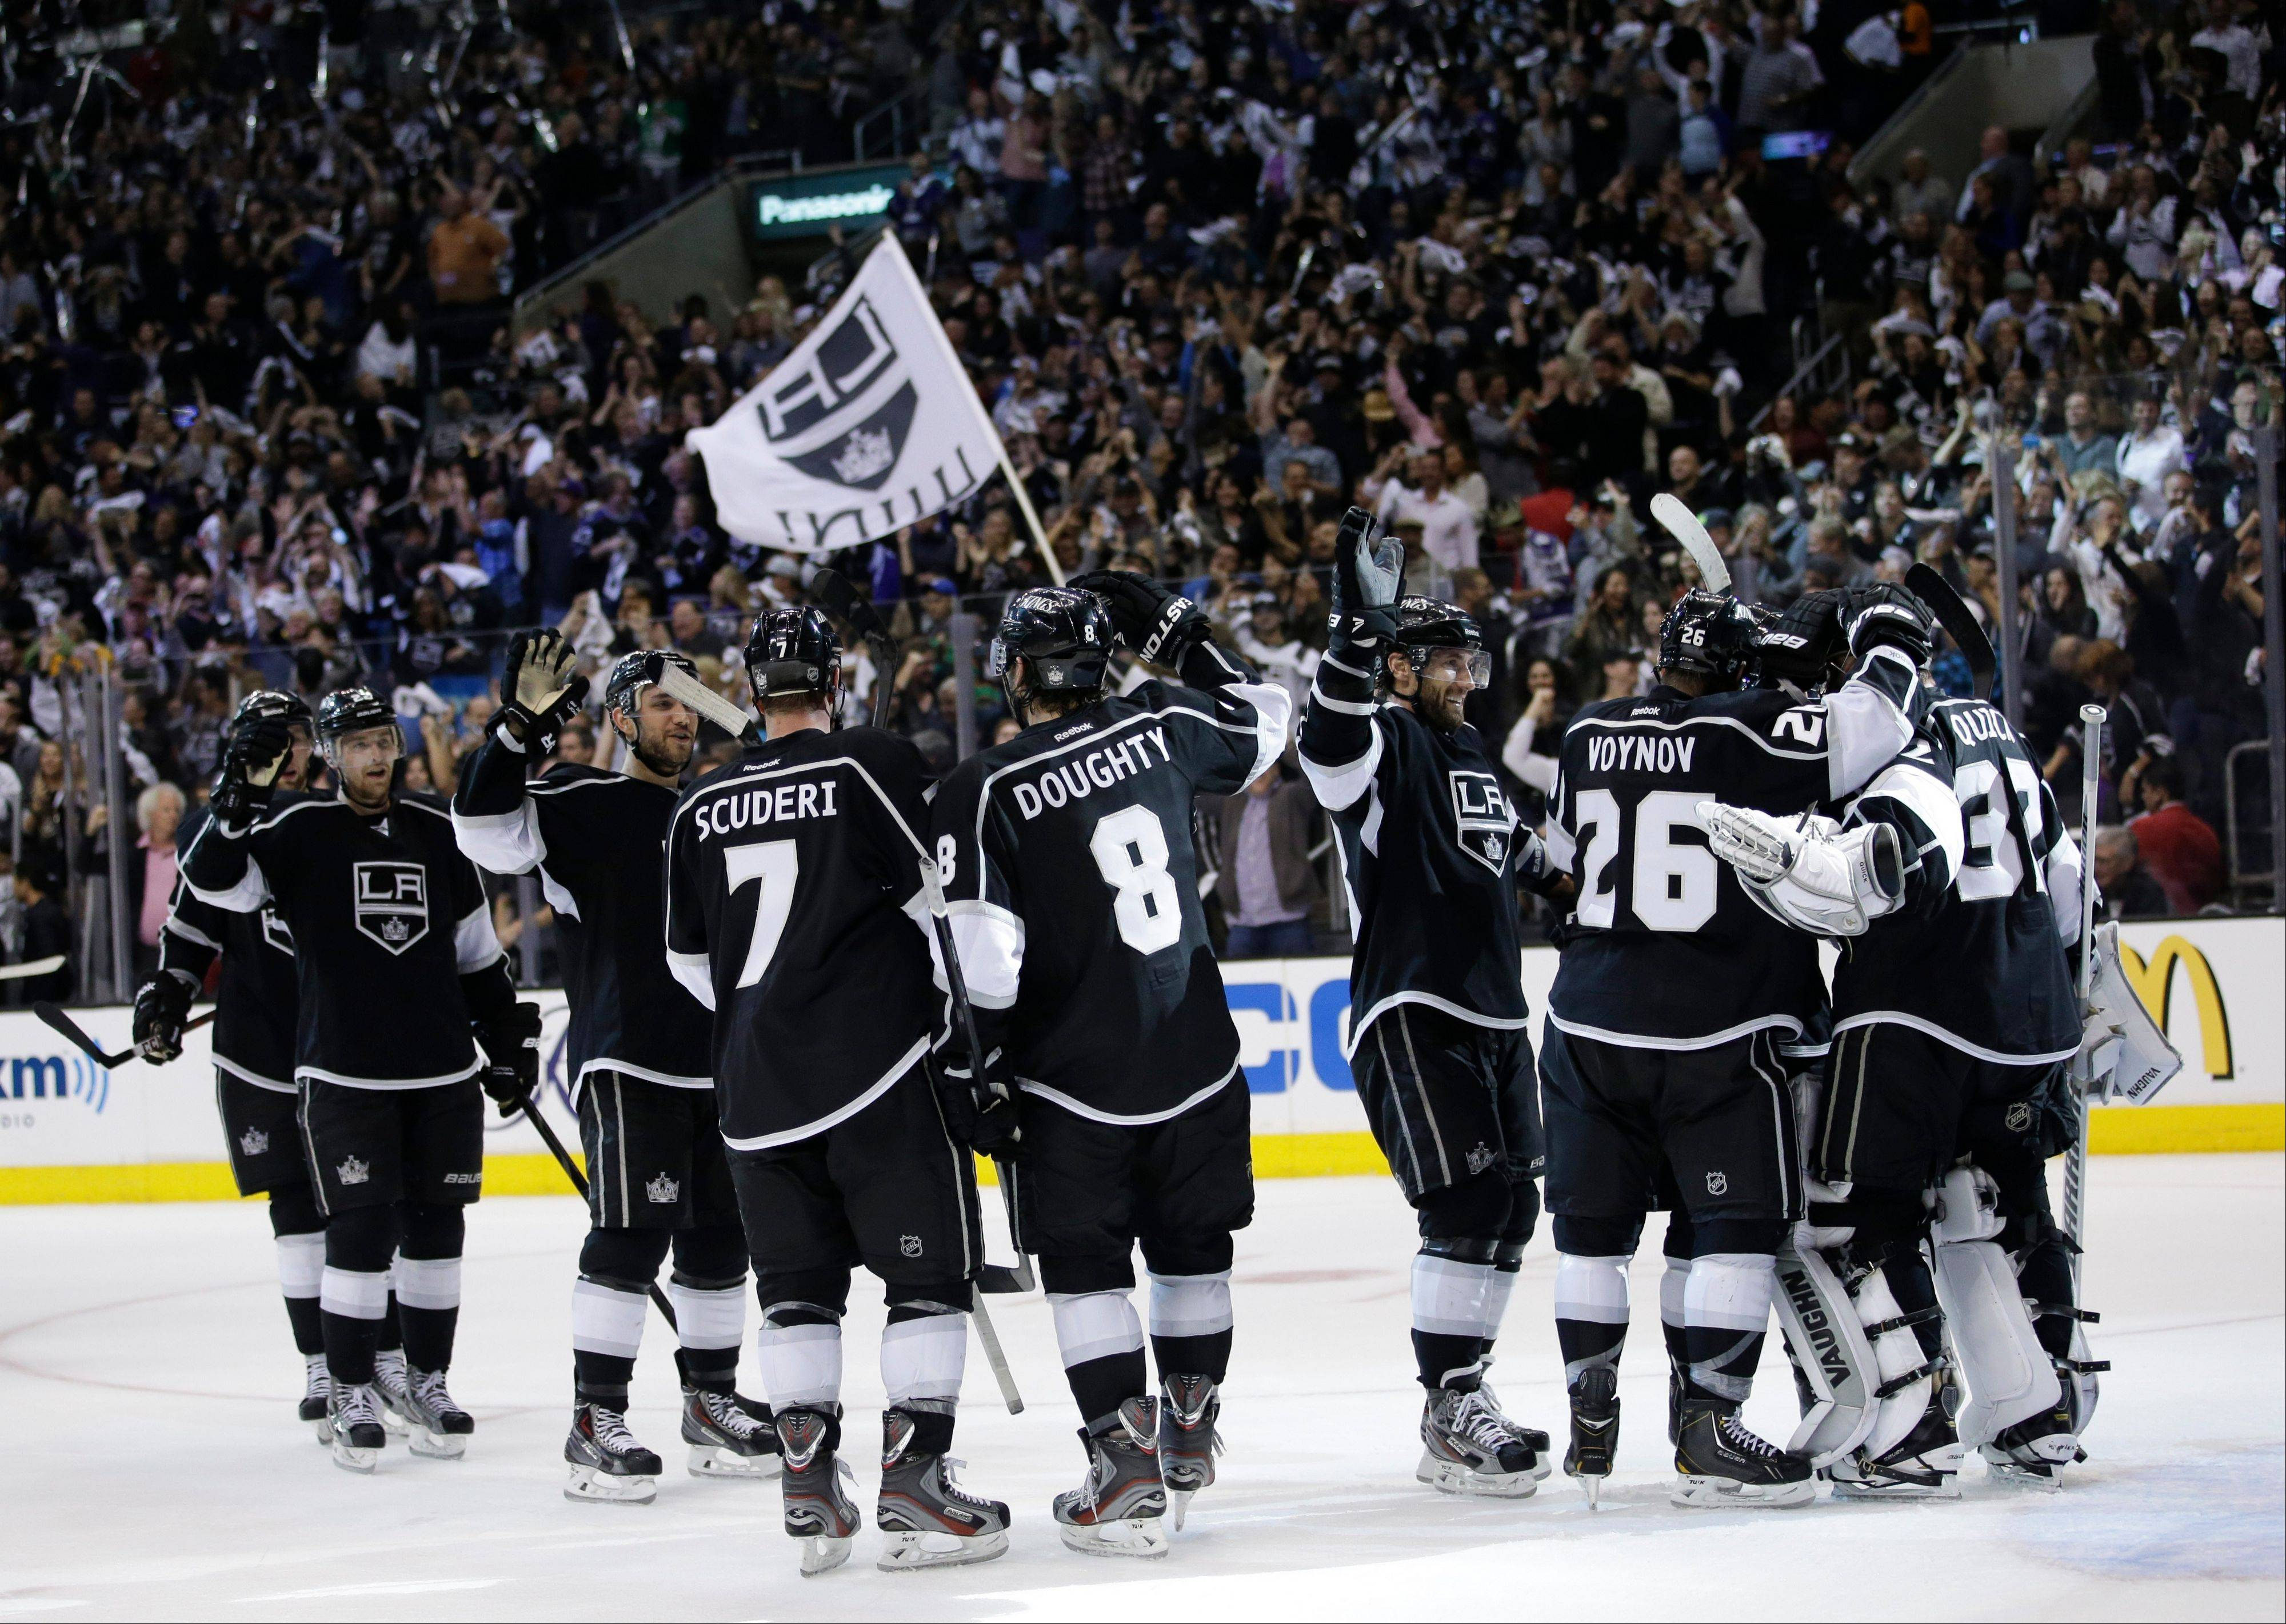 The Los Angeles Kings celebrate their team's 2-1 win against the St. Louis Blues after Game 6 of a first-round NHL hockey Stanley Cup playoff series in Los Angeles, Friday, May 10, 2013.